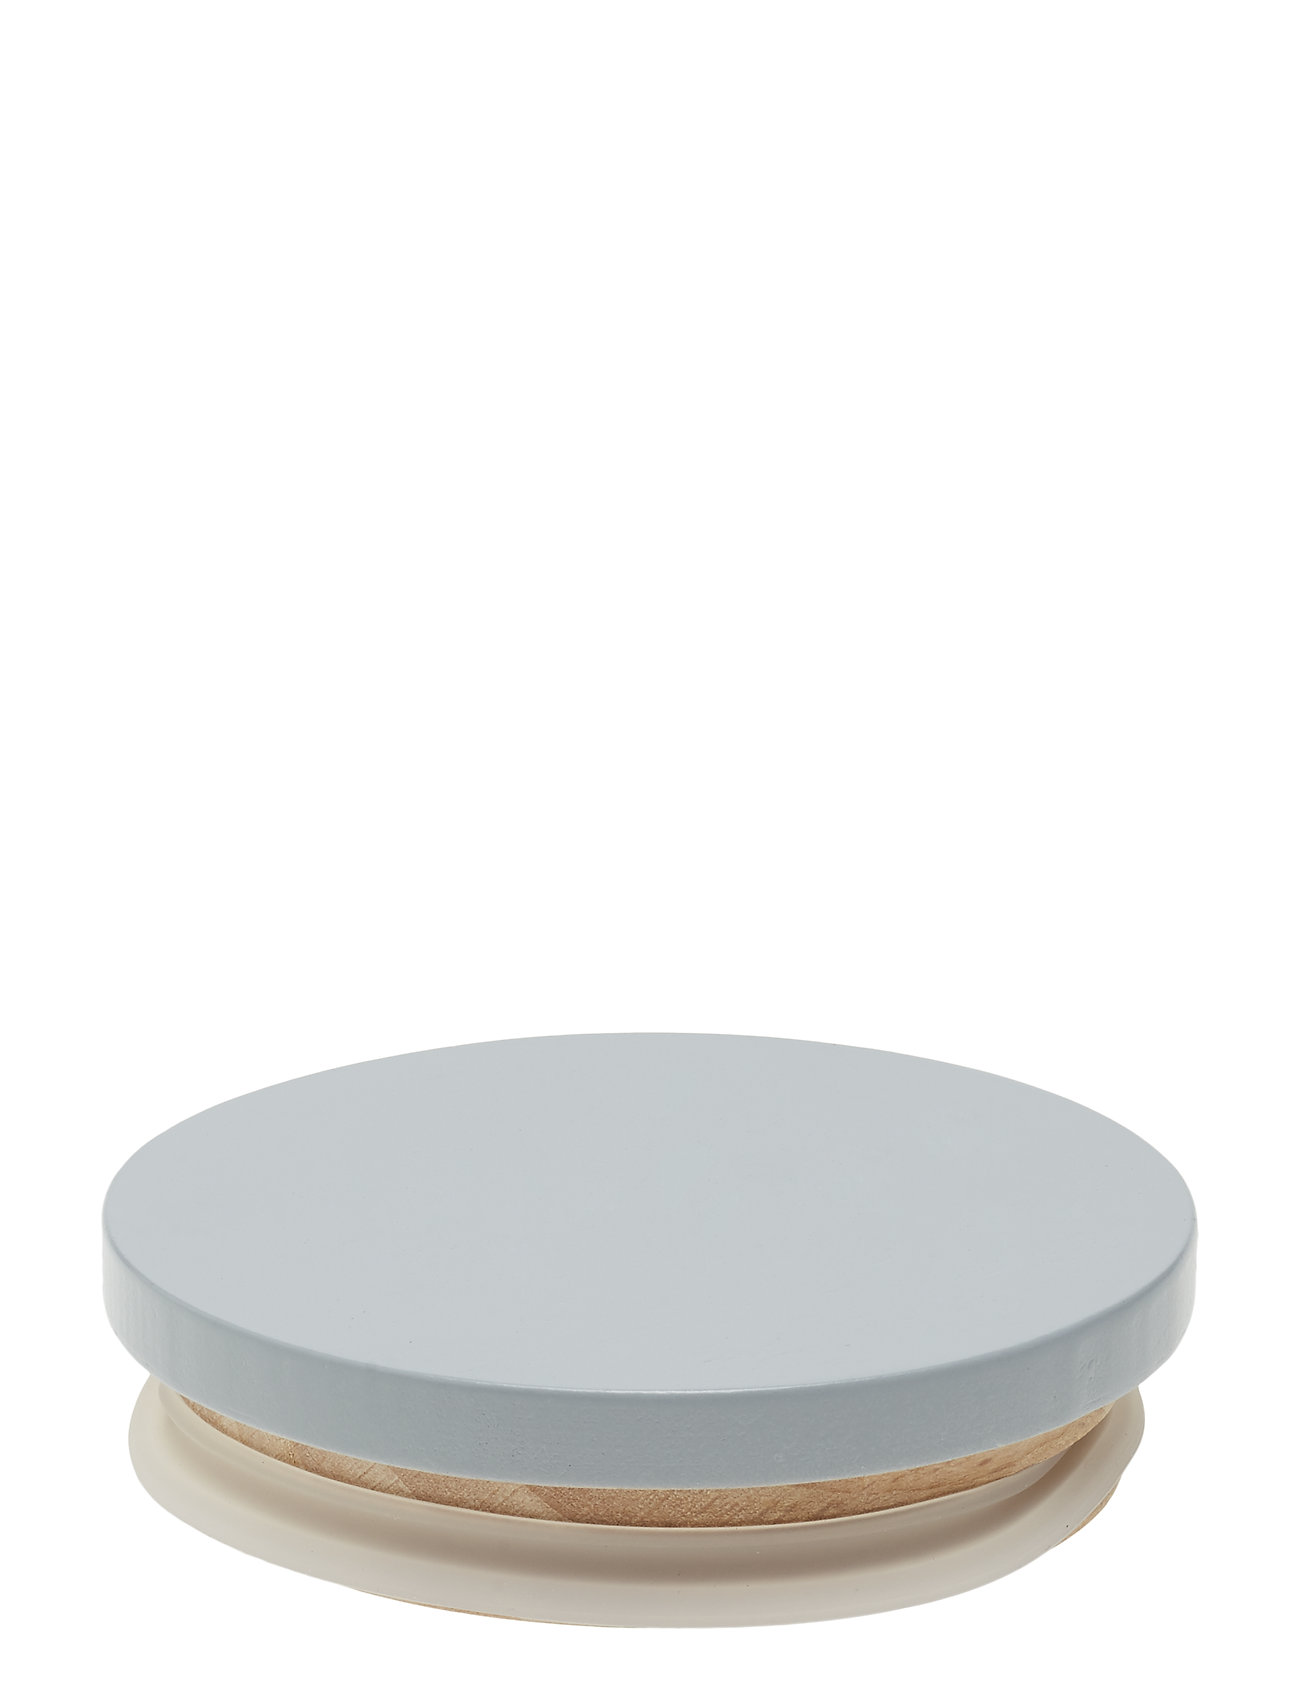 Image of Wooden Lid For Porcelain Cup Home Meal Time Cups & Mugs Grå Design Letters (3452121501)